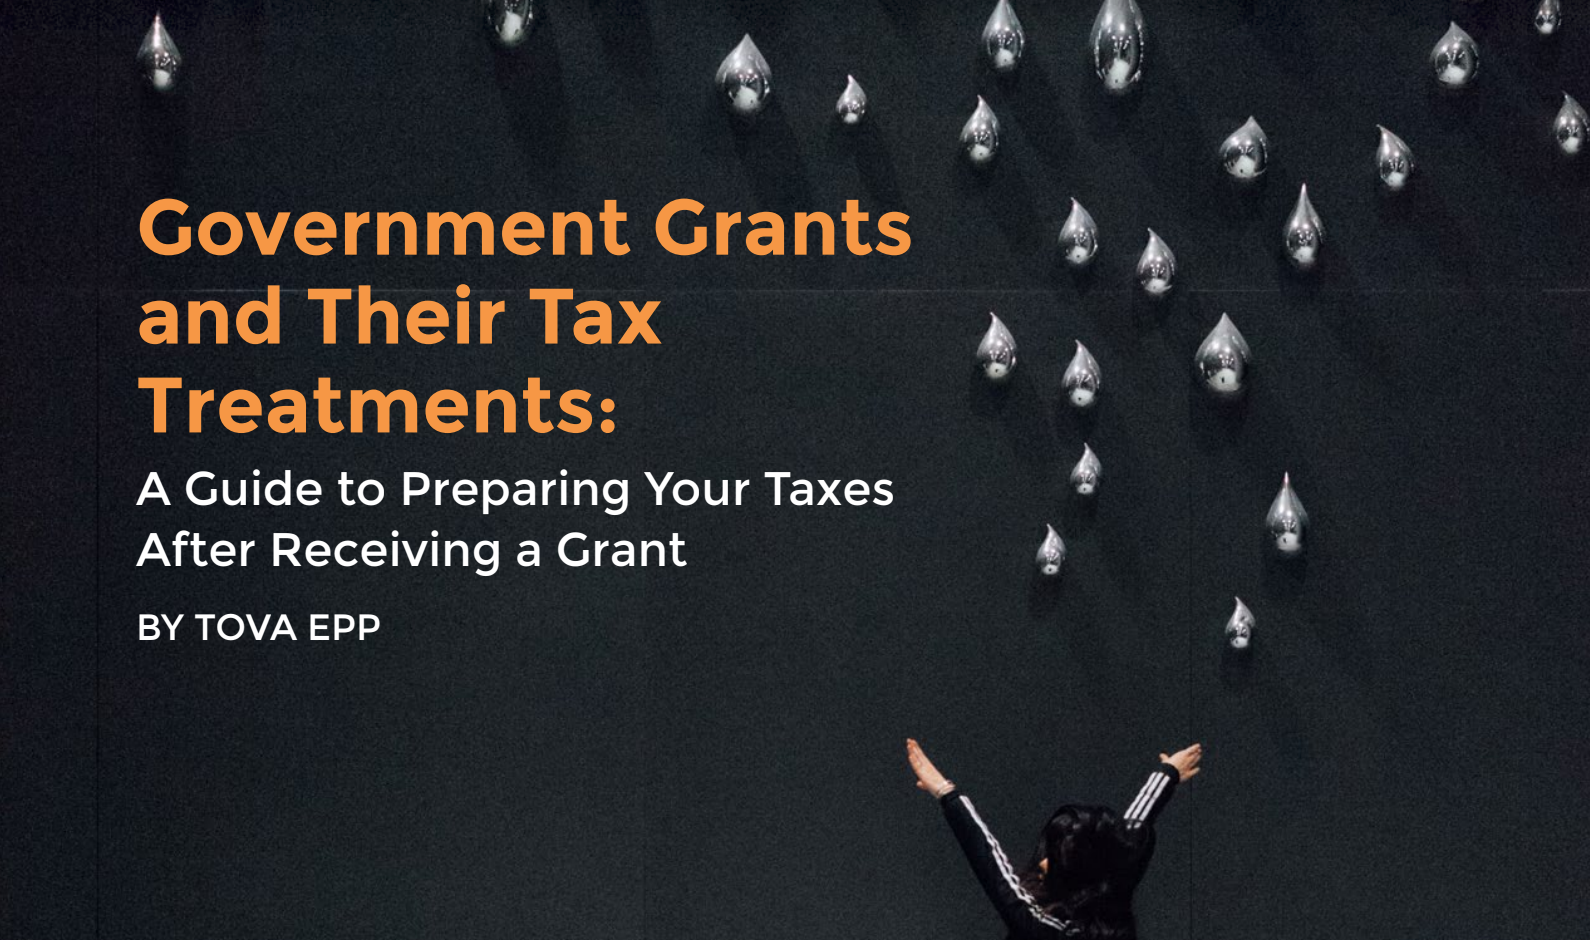 Government Grants and Their Tax Treatments.png